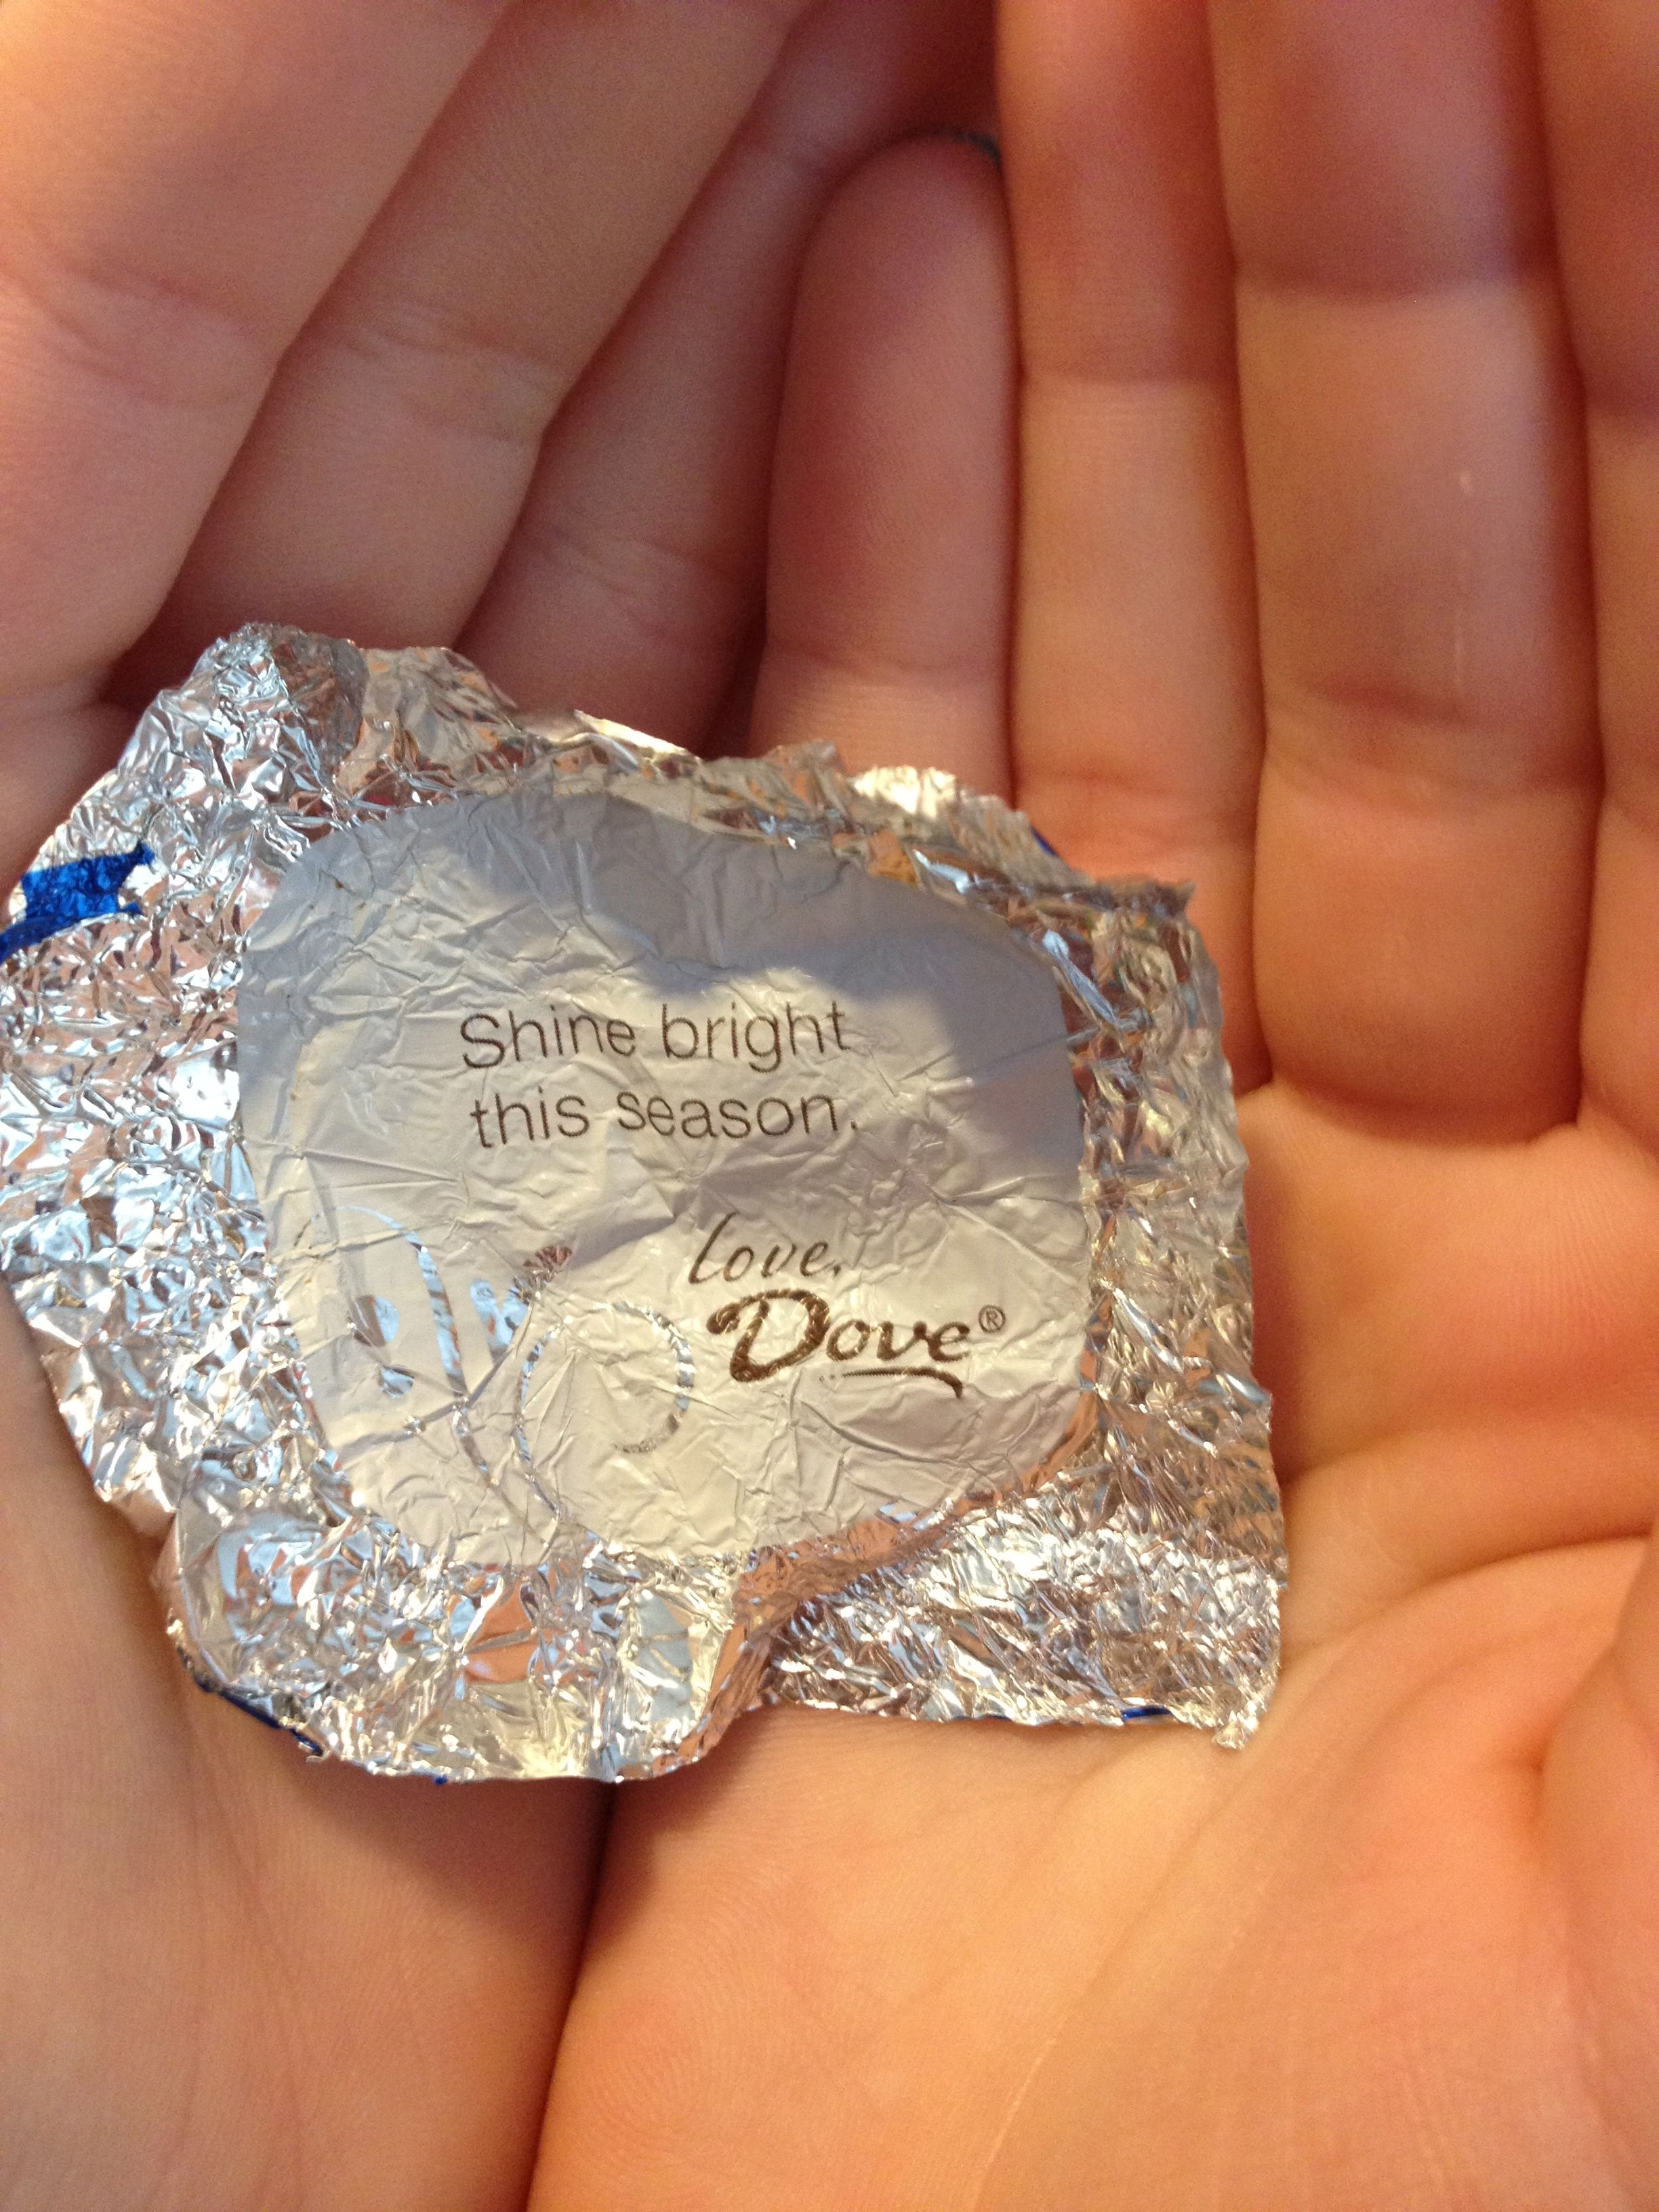 Dove Chocolate Wrapper | Random | Pinterest